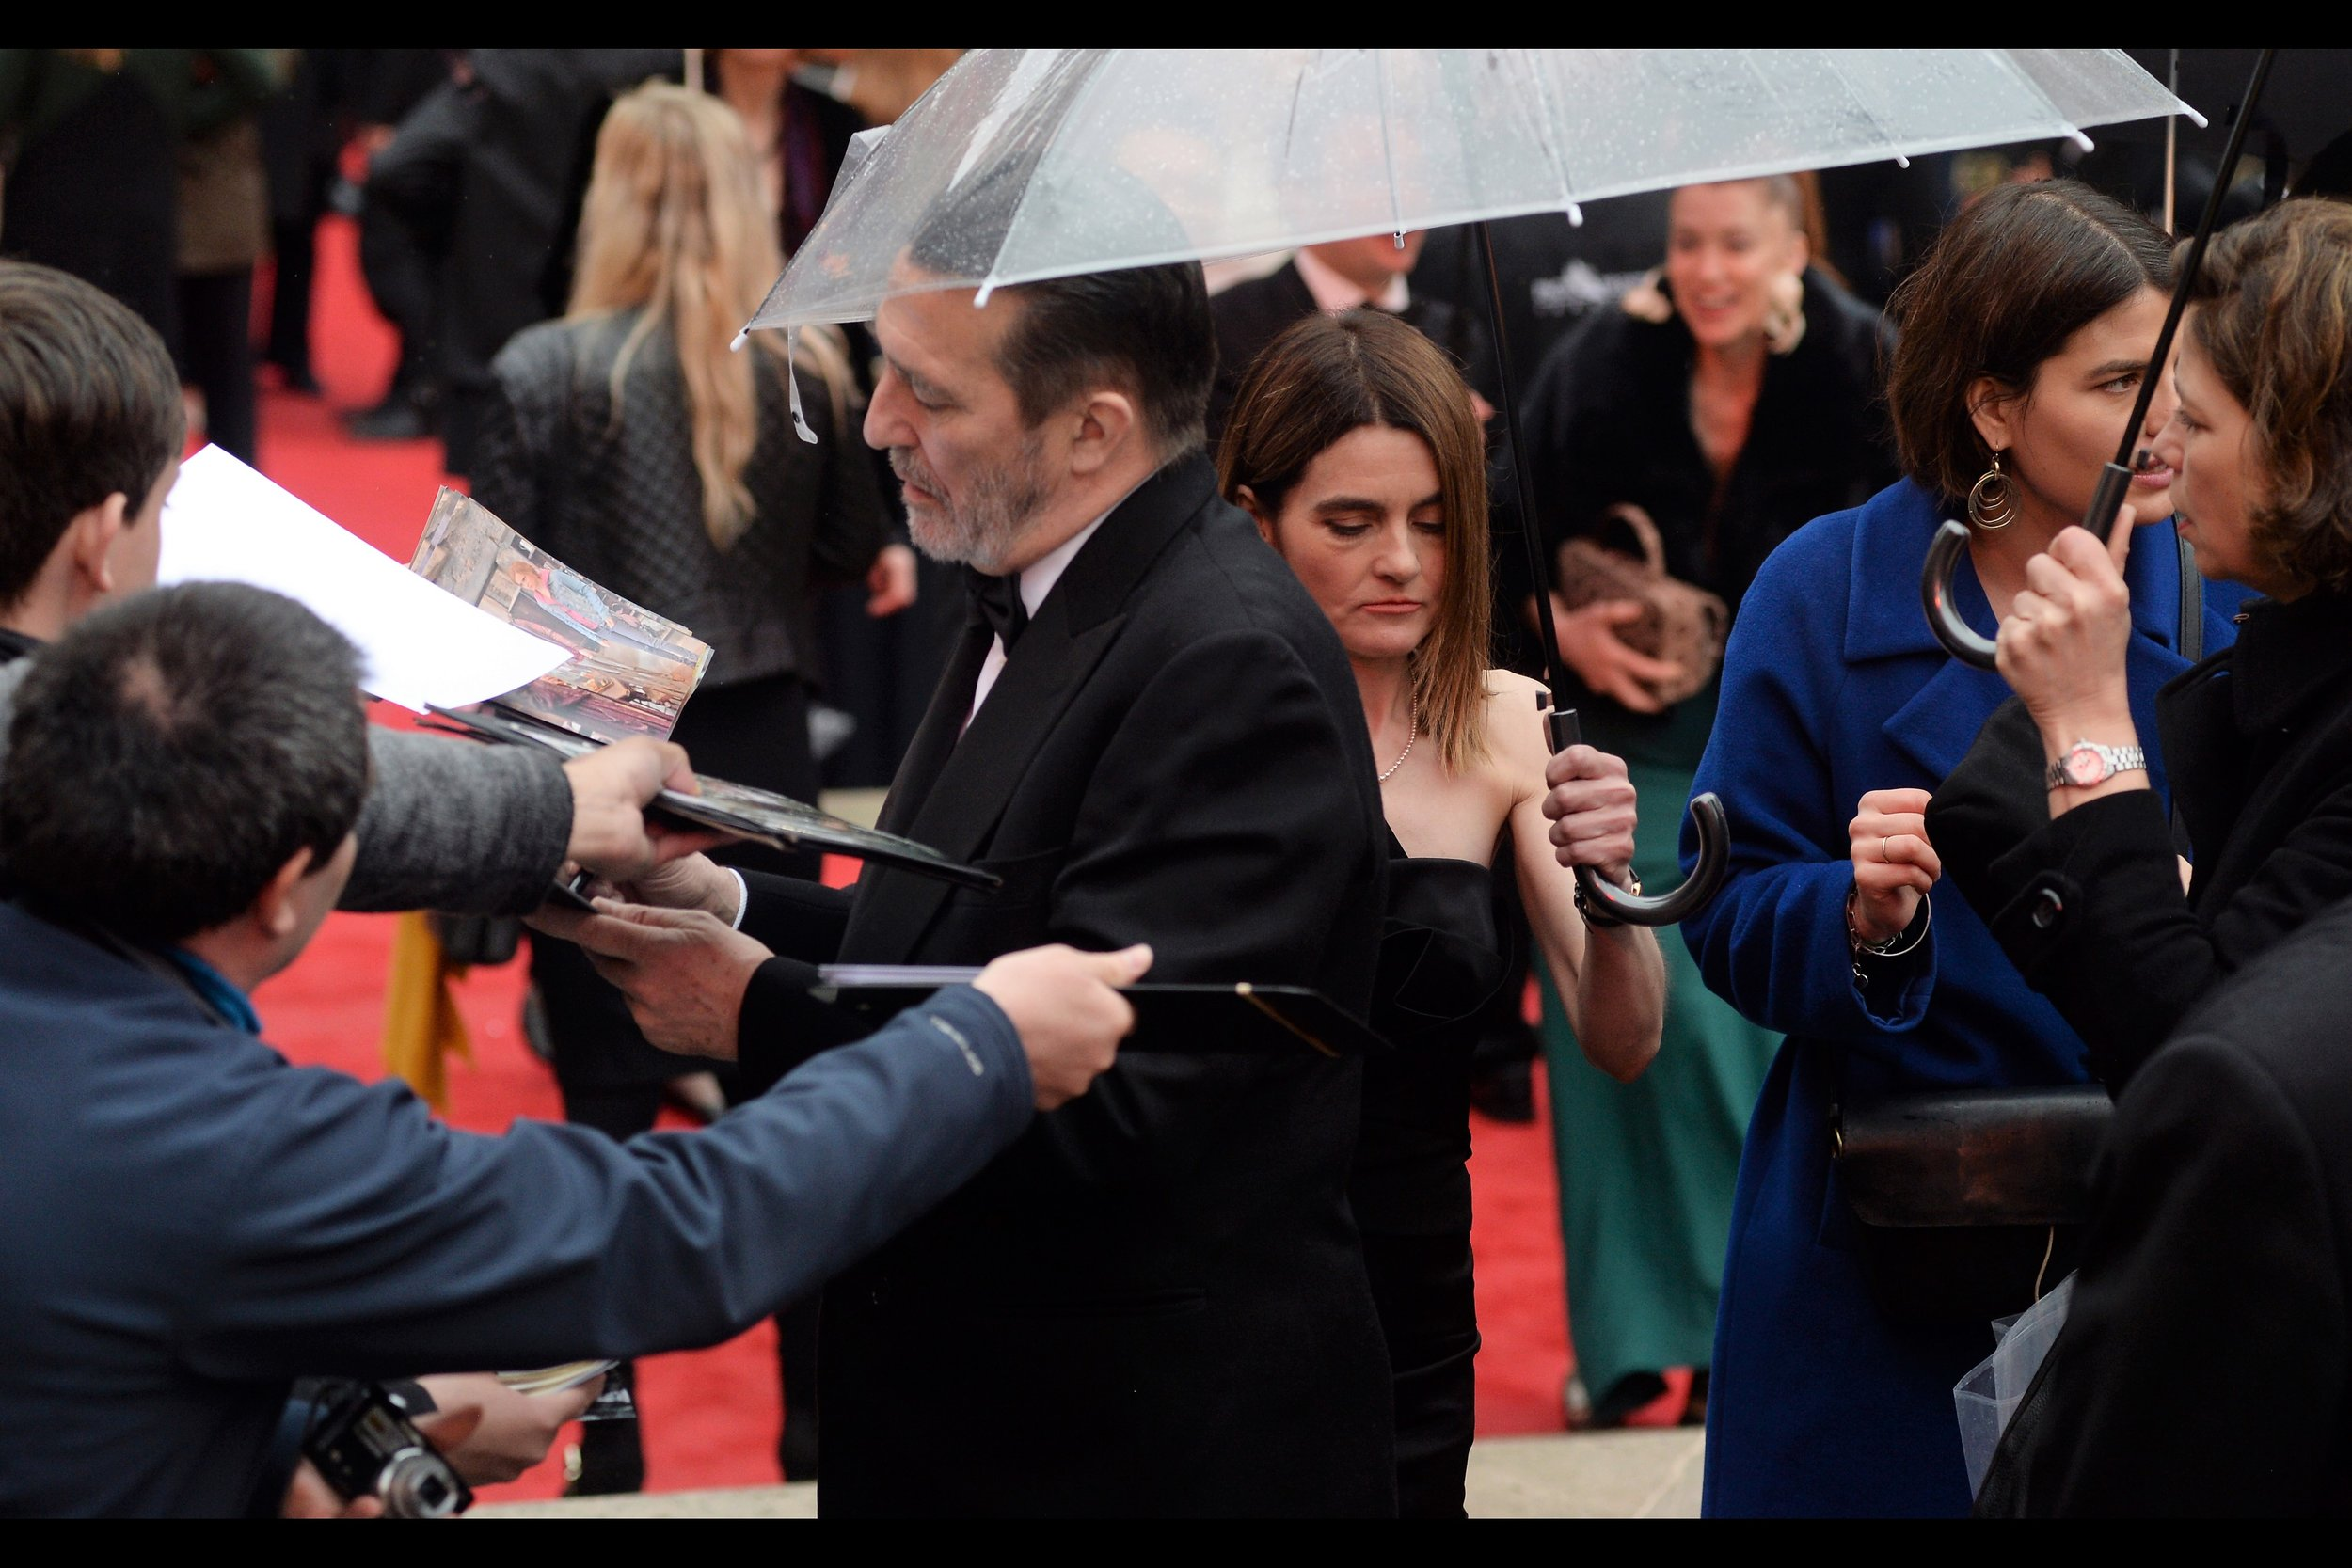 Passing by Ciaran Hinds is Shirley Henderson, arguably best known for being Moaning Mirtle across a few Harry Potter films, but she won Best Actress in a Musical on the night.